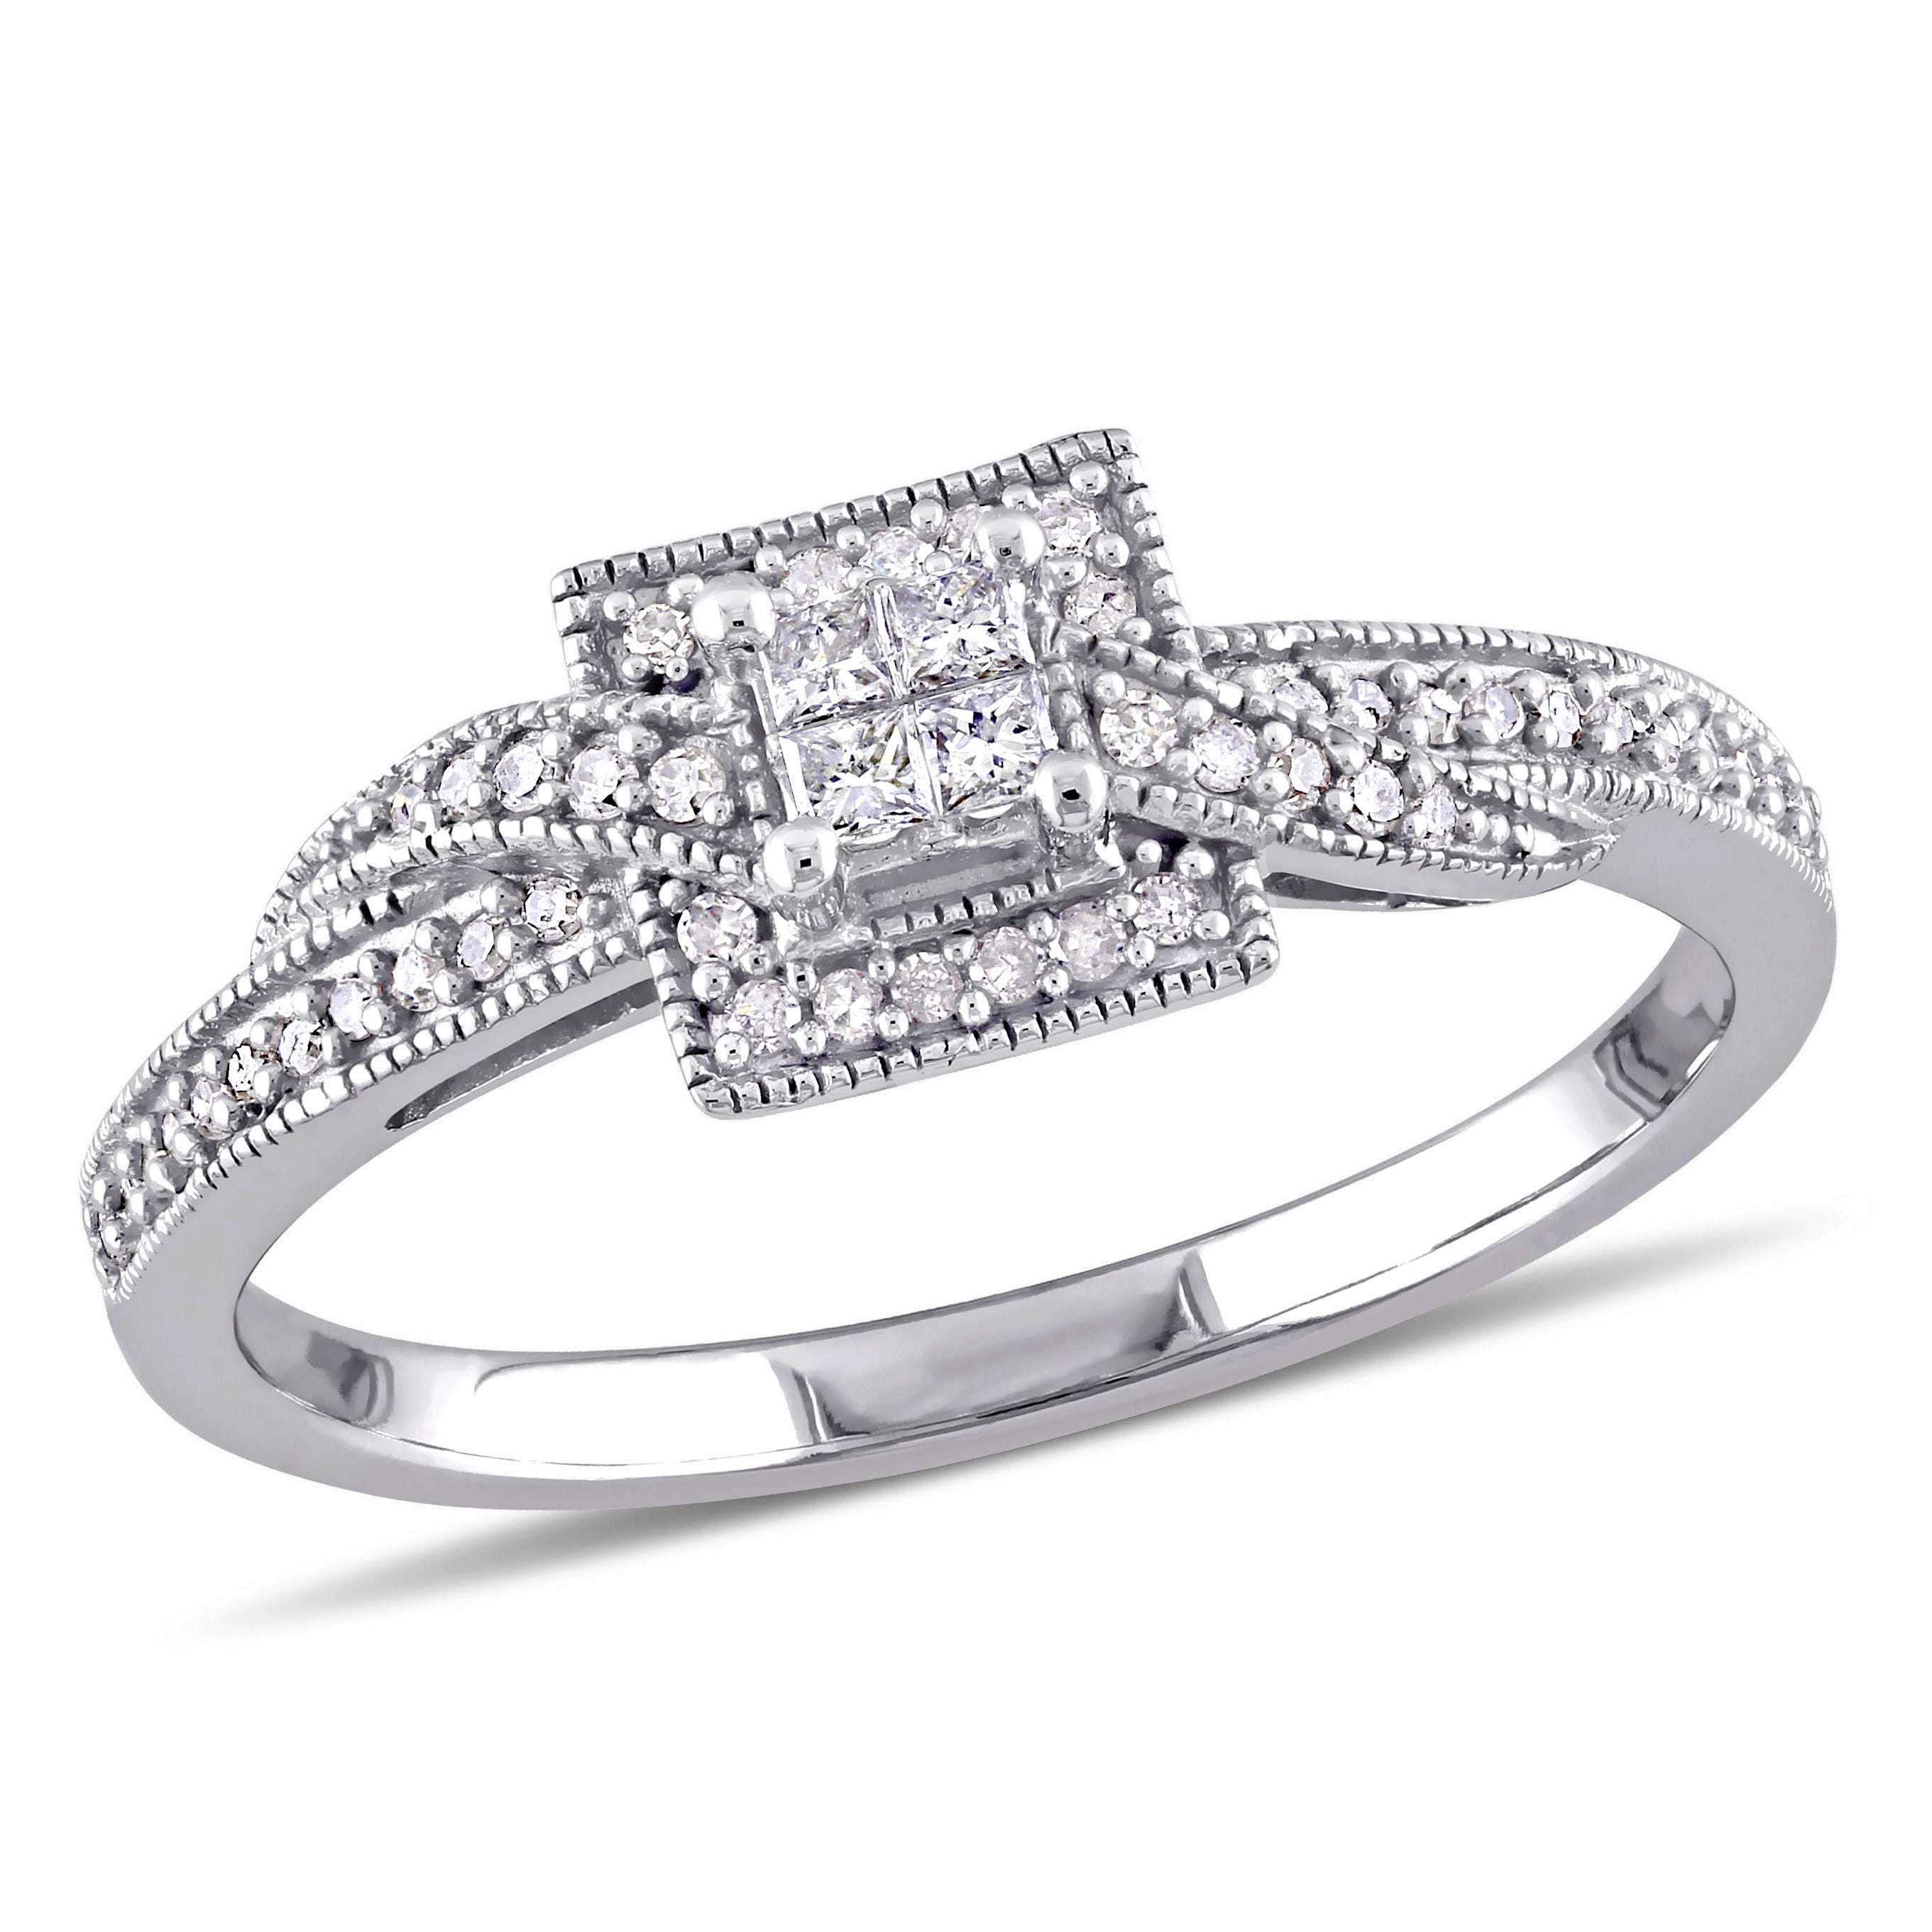 Princess & Round Cut Diamond Halo Crossover Promise Ring 1/4ctw. in 10k White Gold